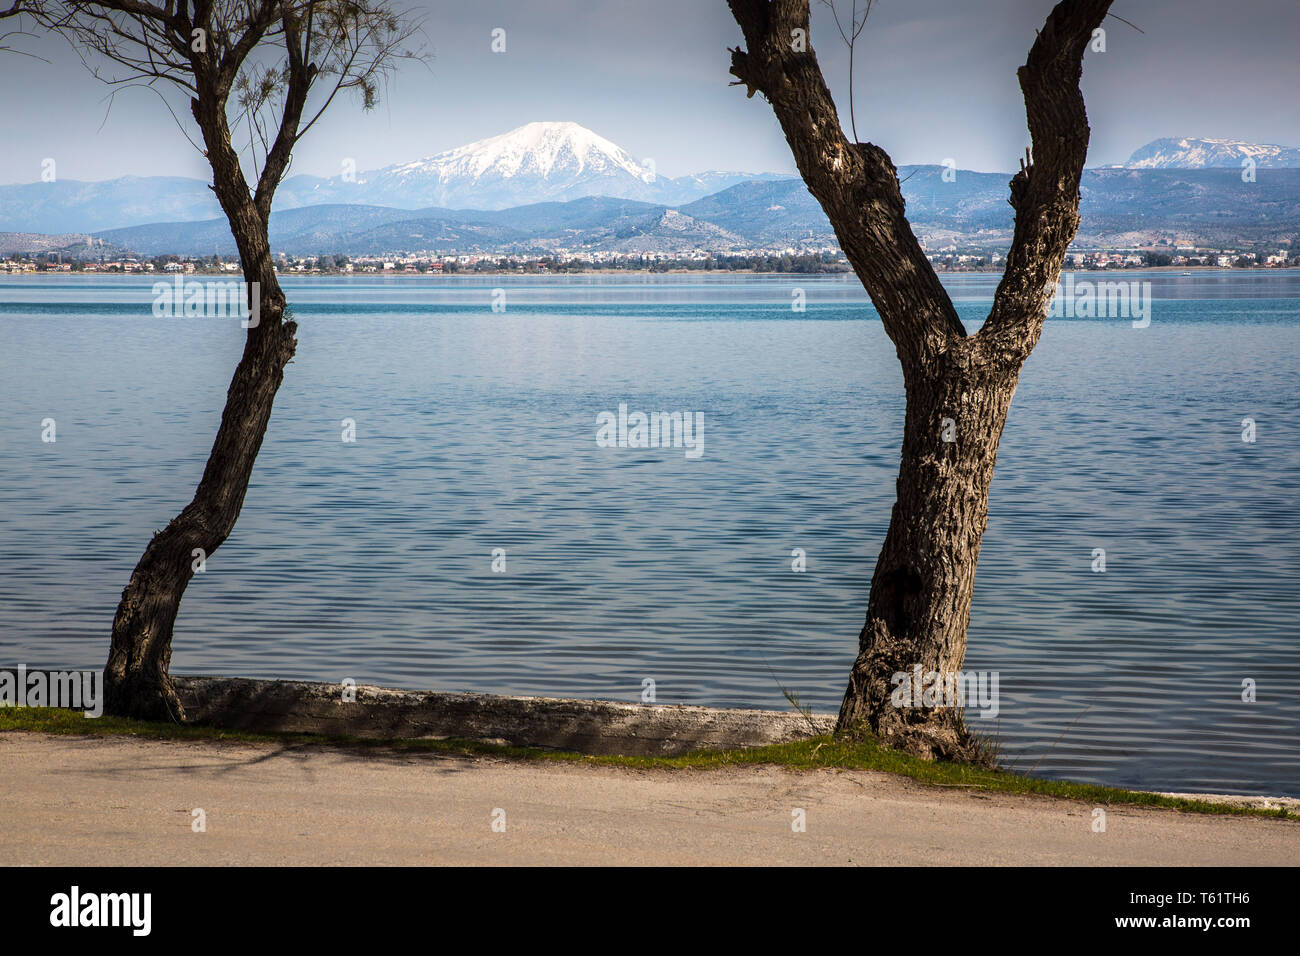 Seen from Avlida's road by the sea,Mount Olympus, traditionally known as the home of the ancient Greek gods, thrusts its snowy peak over the horizon. - Stock Image